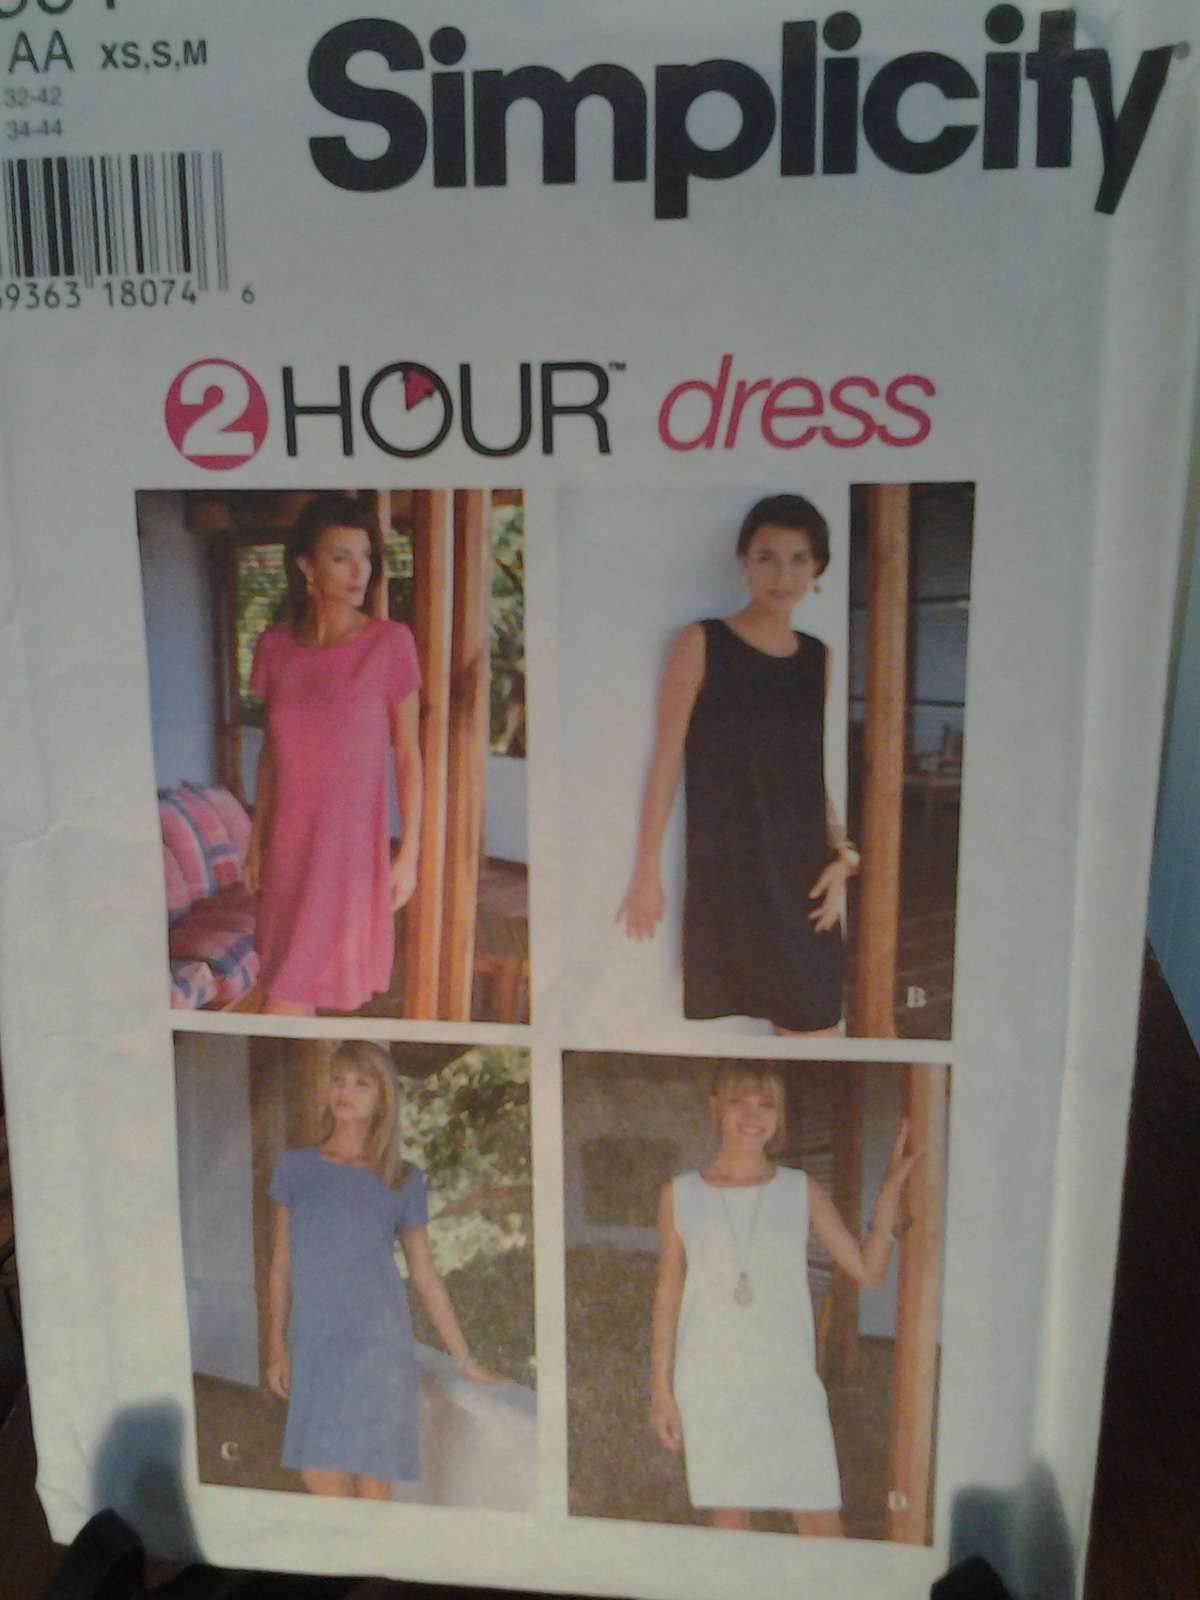 Simplicity Pattern 9591 Two hour dress from 1996, New Uncut & Factory Folded